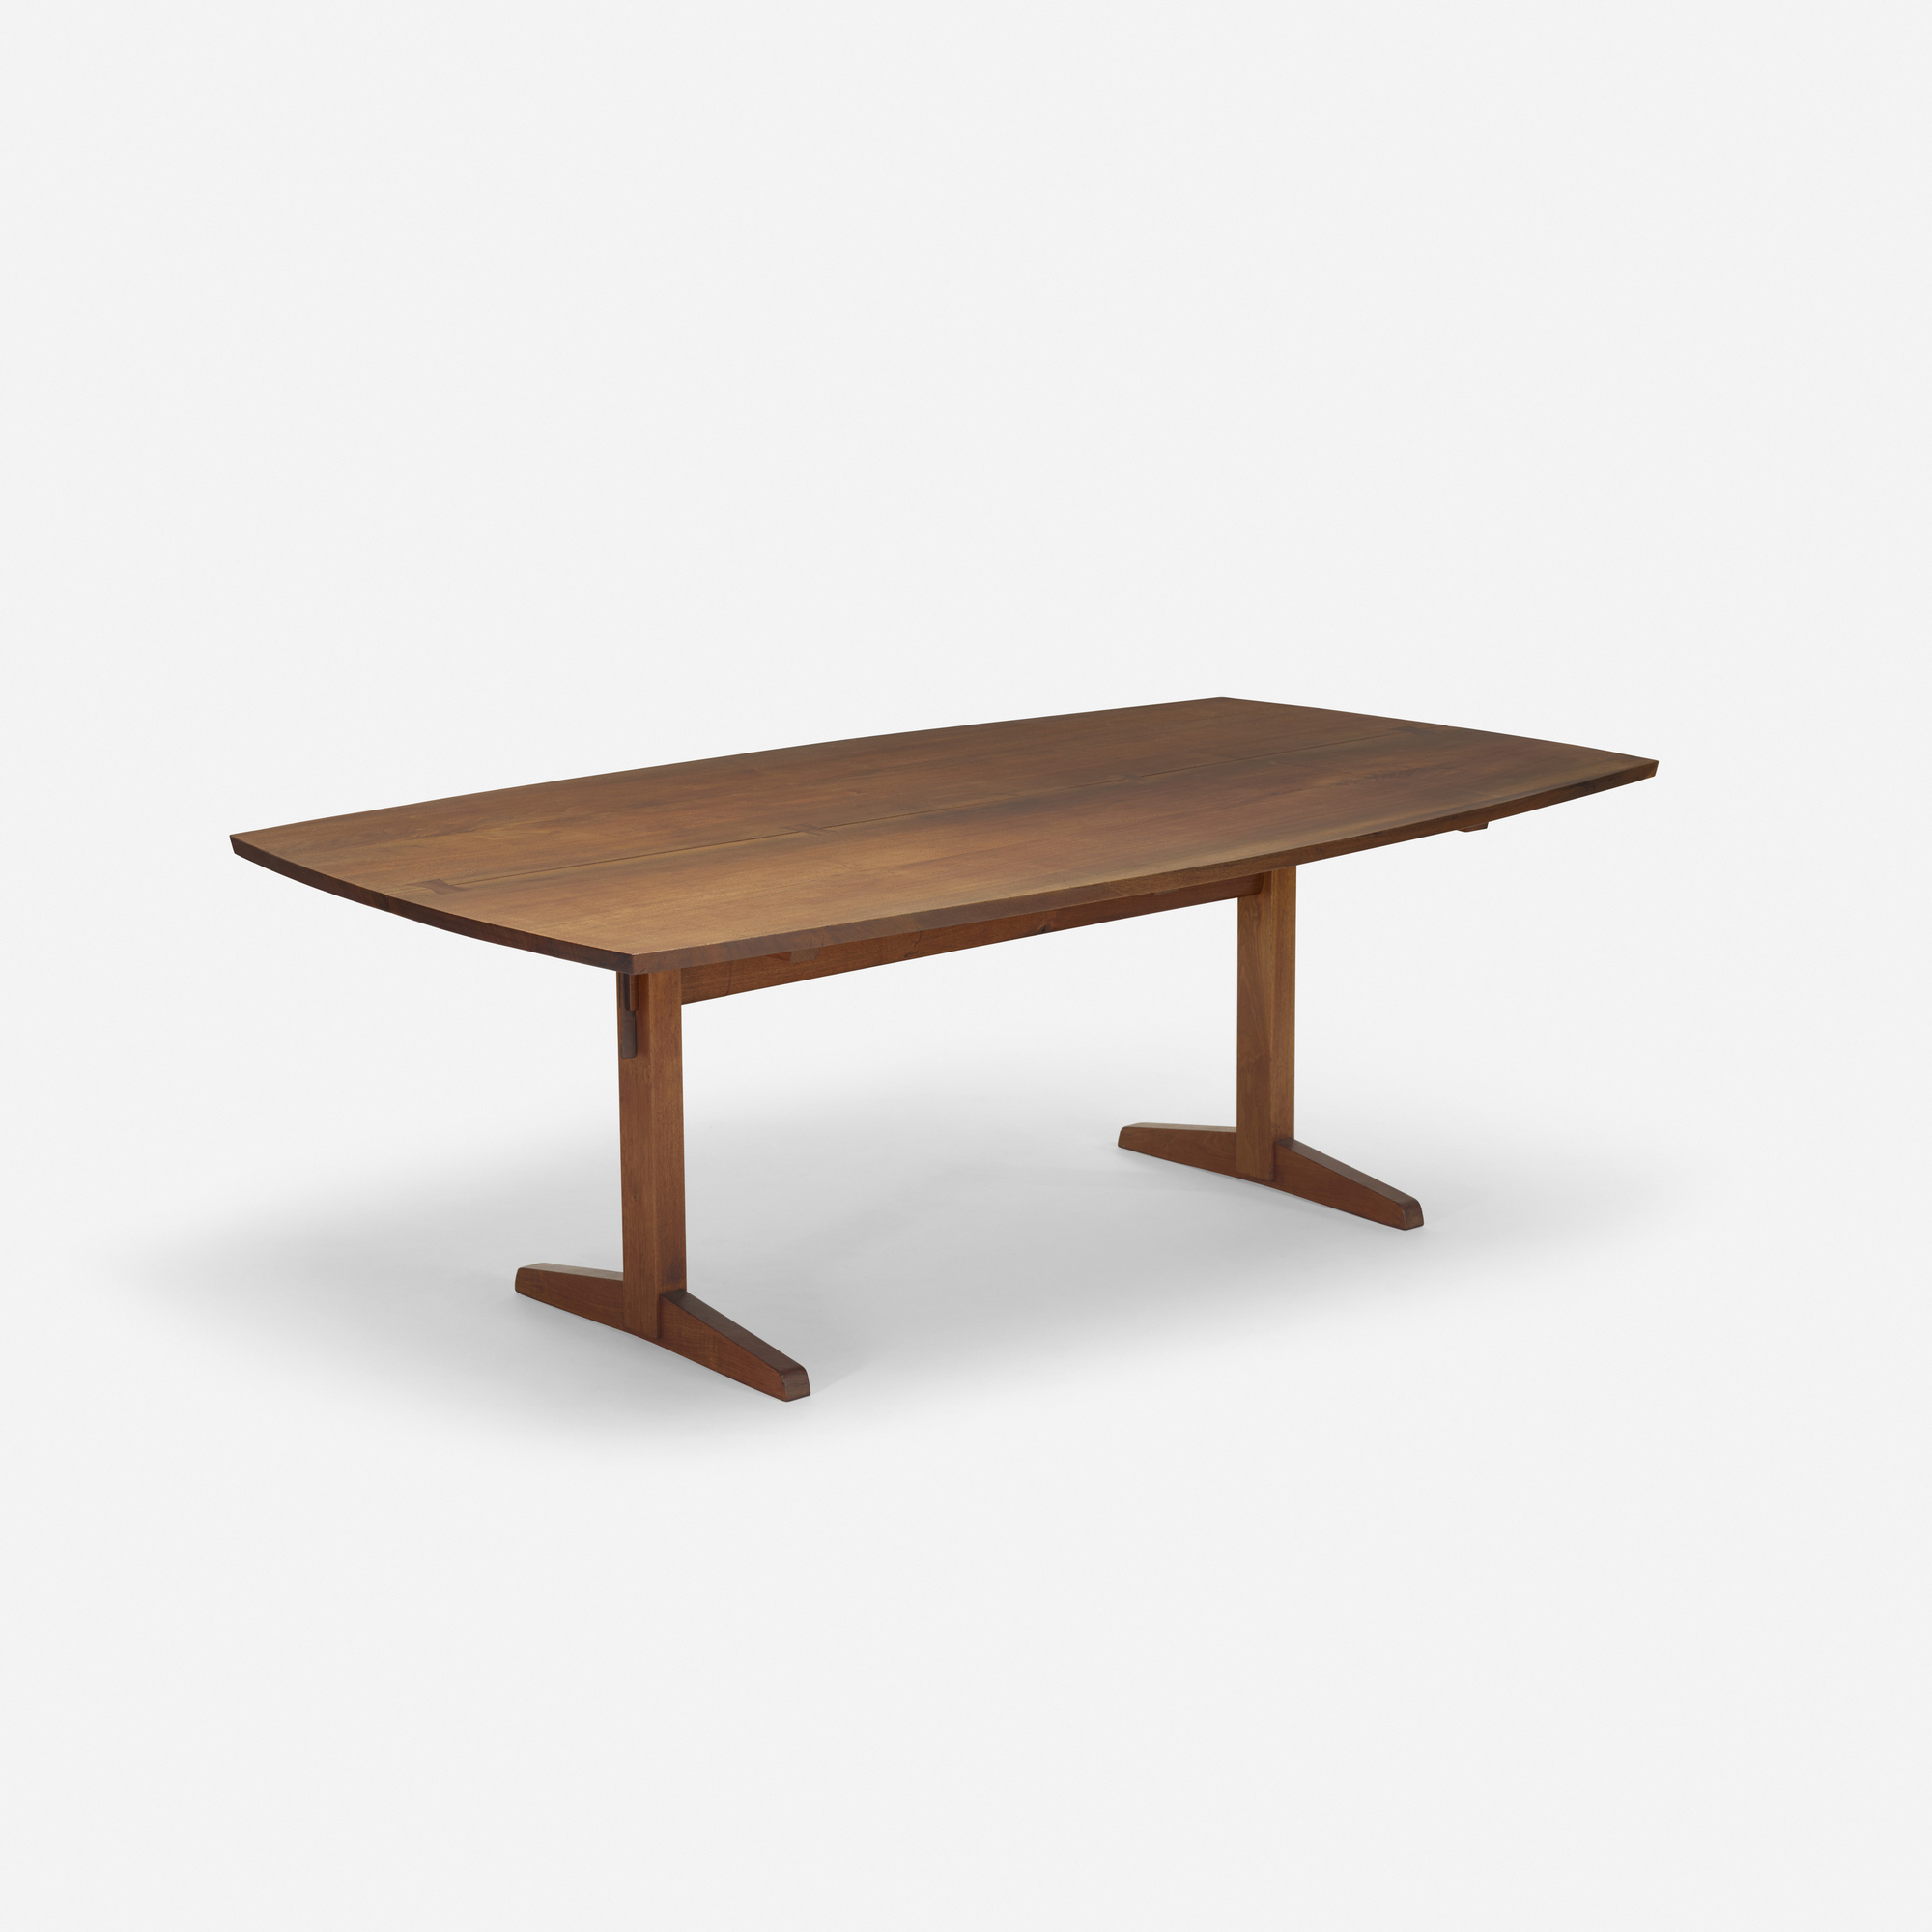 123 george nakashima trestle dining table for Table design 2016